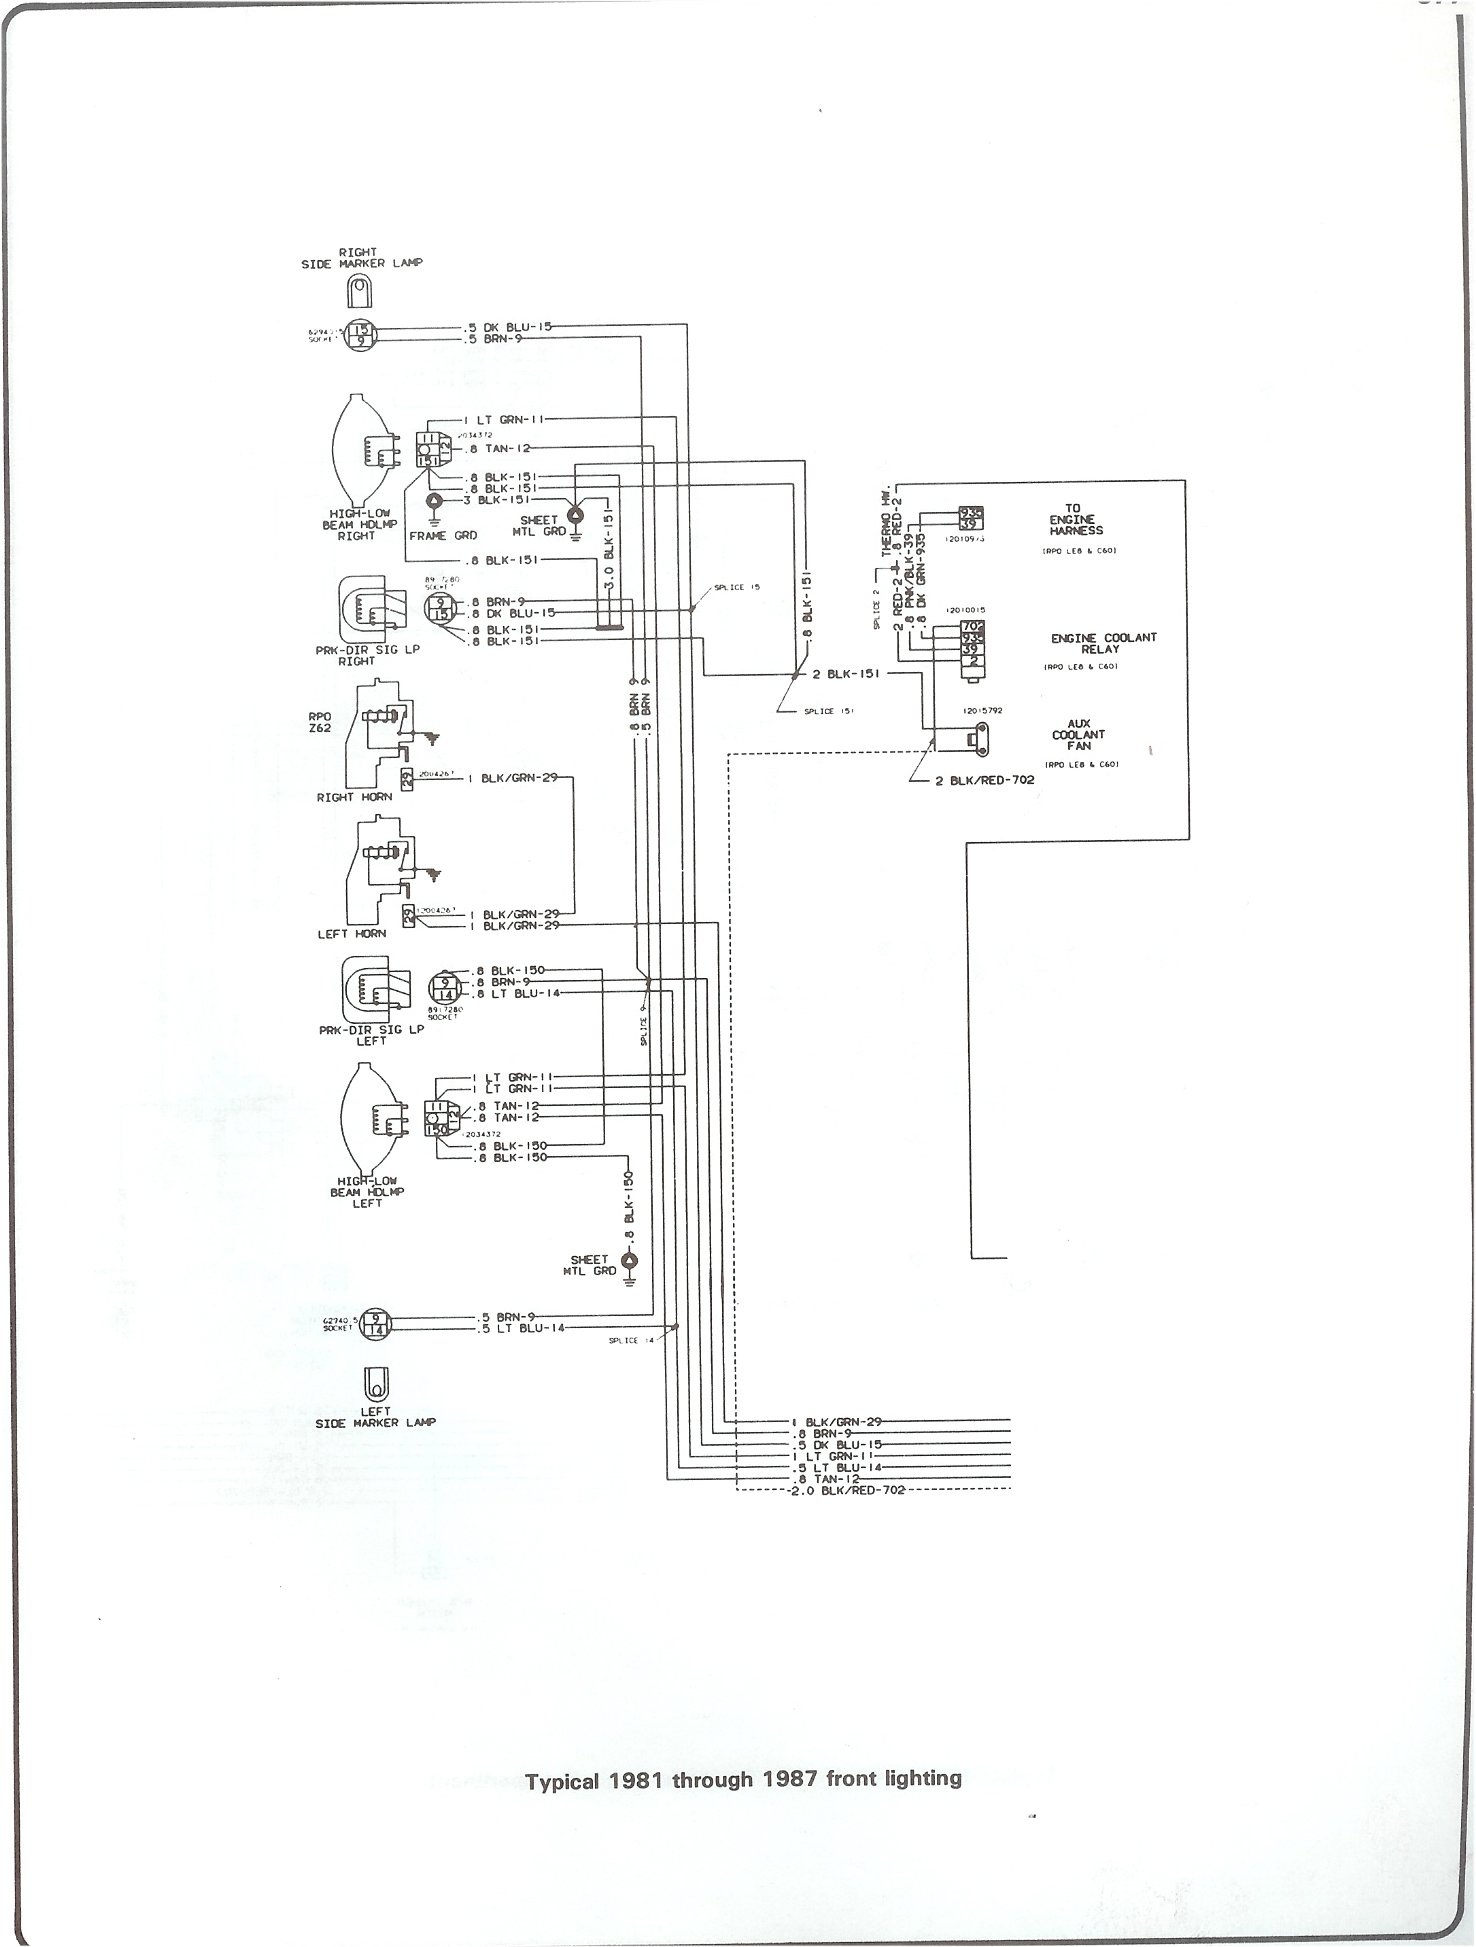 1977 chevy tail light wiring diagram electrical work wiring diagram \u2022 polaris tail light wiring harness complete 73 87 wiring diagrams rh forum 73 87chevytrucks com 1989 gmc truck tail light wiring 1989 gmc truck tail light wiring